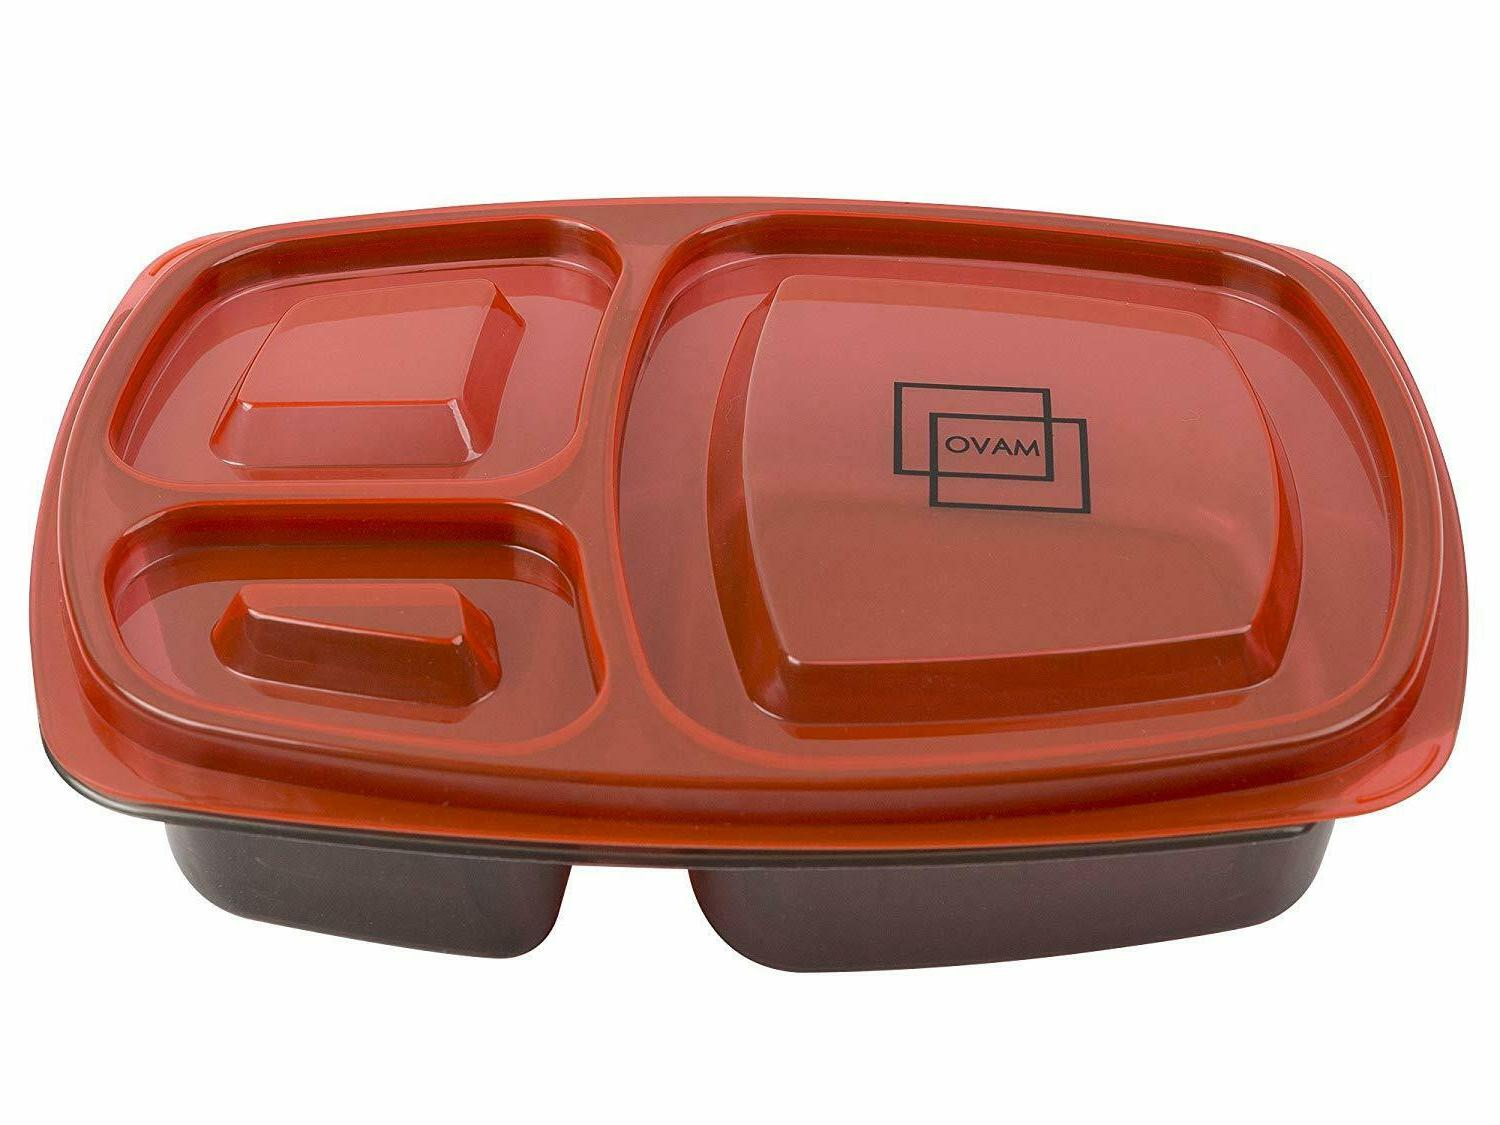 7 Meal Containers Food Storage Compartment Plastic Reusable